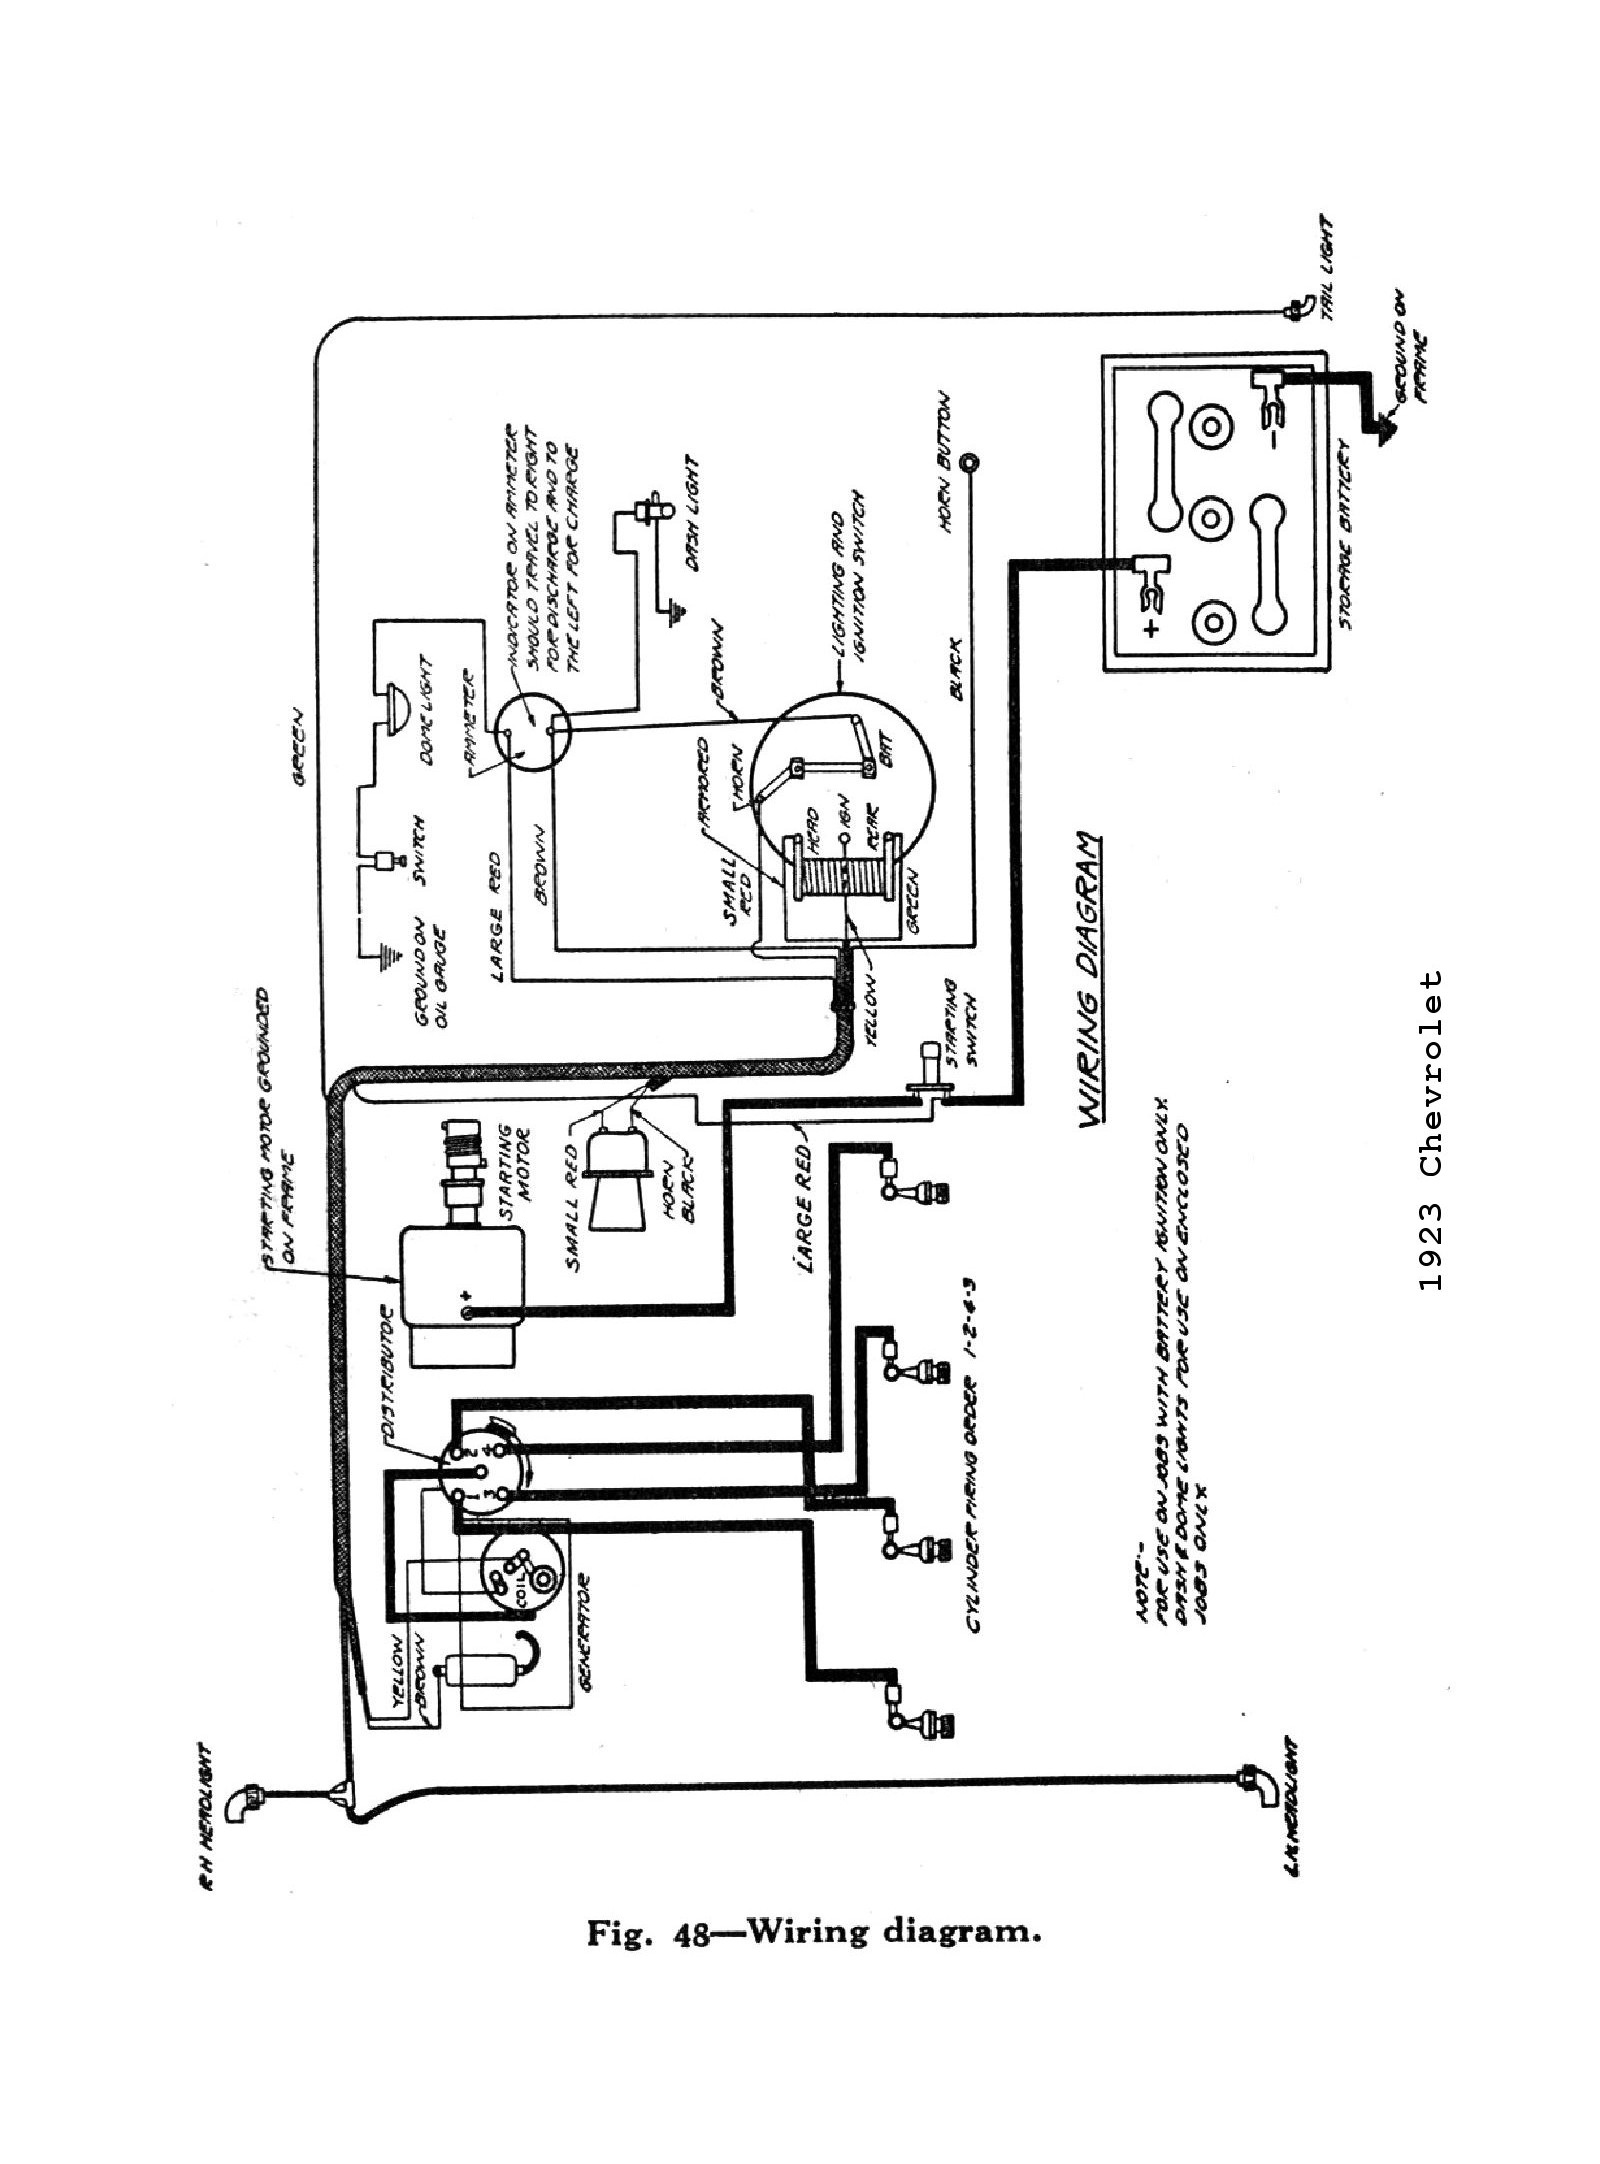 1979 gmc general wiring diagram